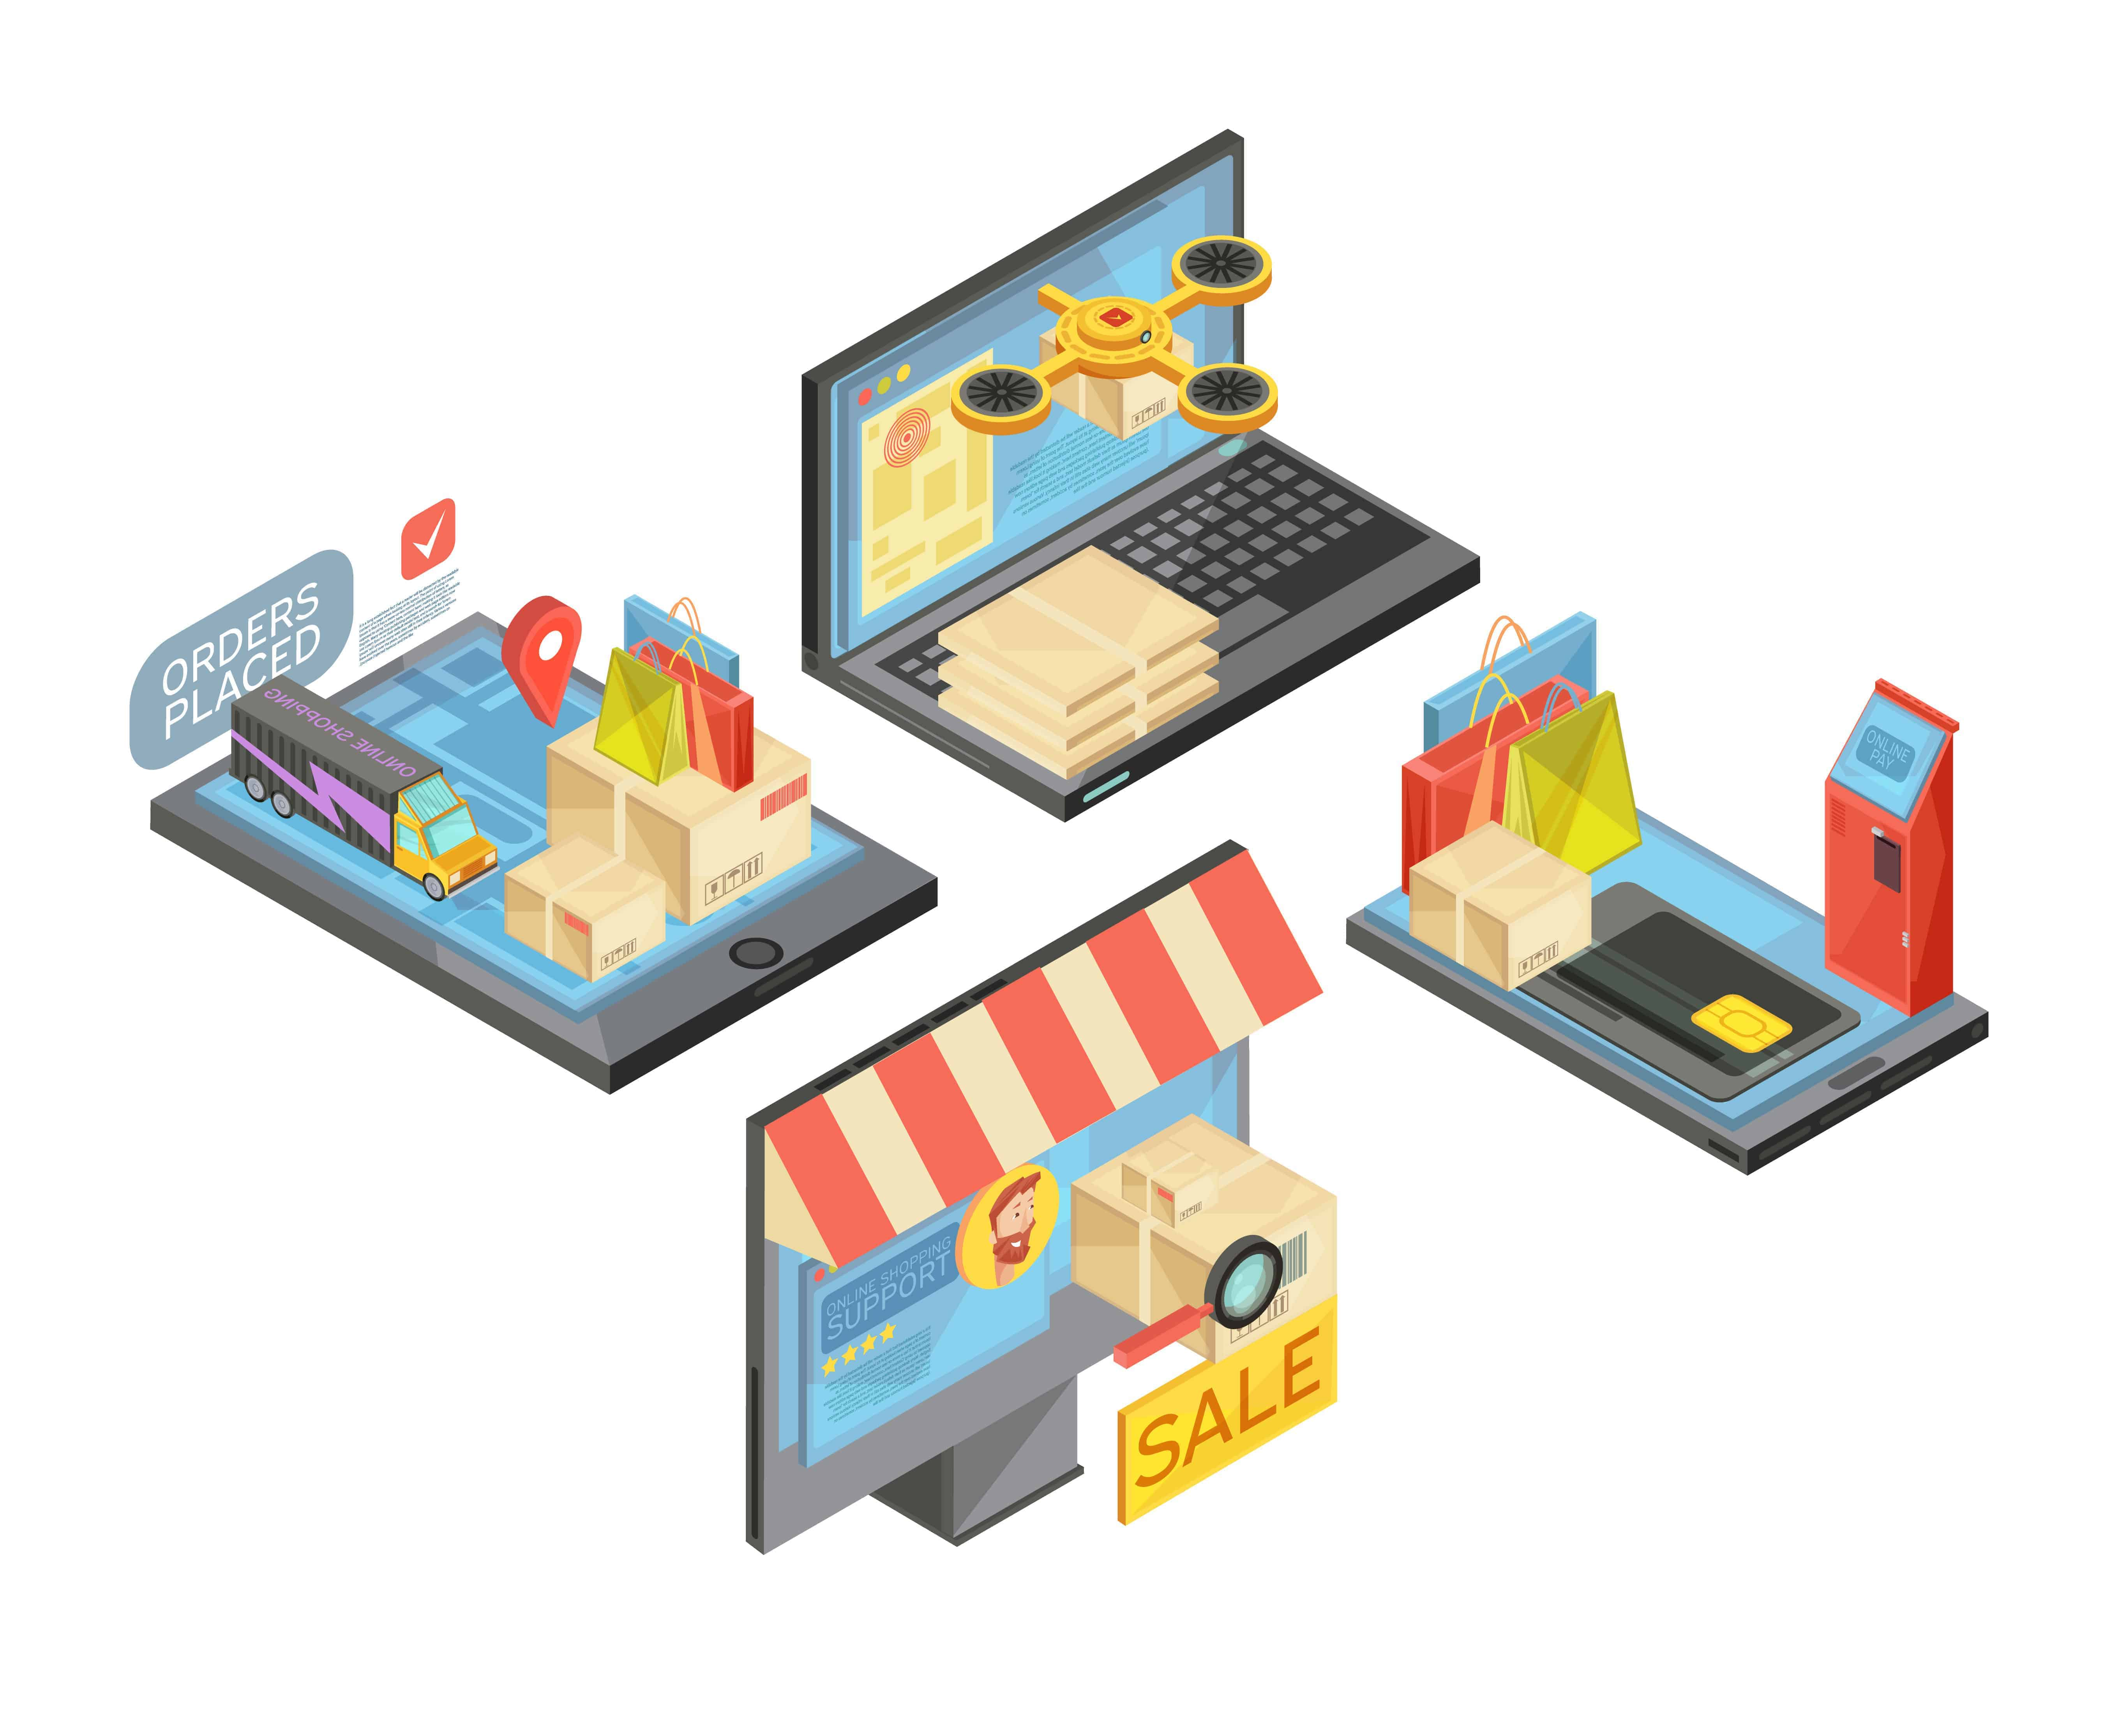 Ecommerce example with diferent types of products on electronic devices - eCommerce και eShops